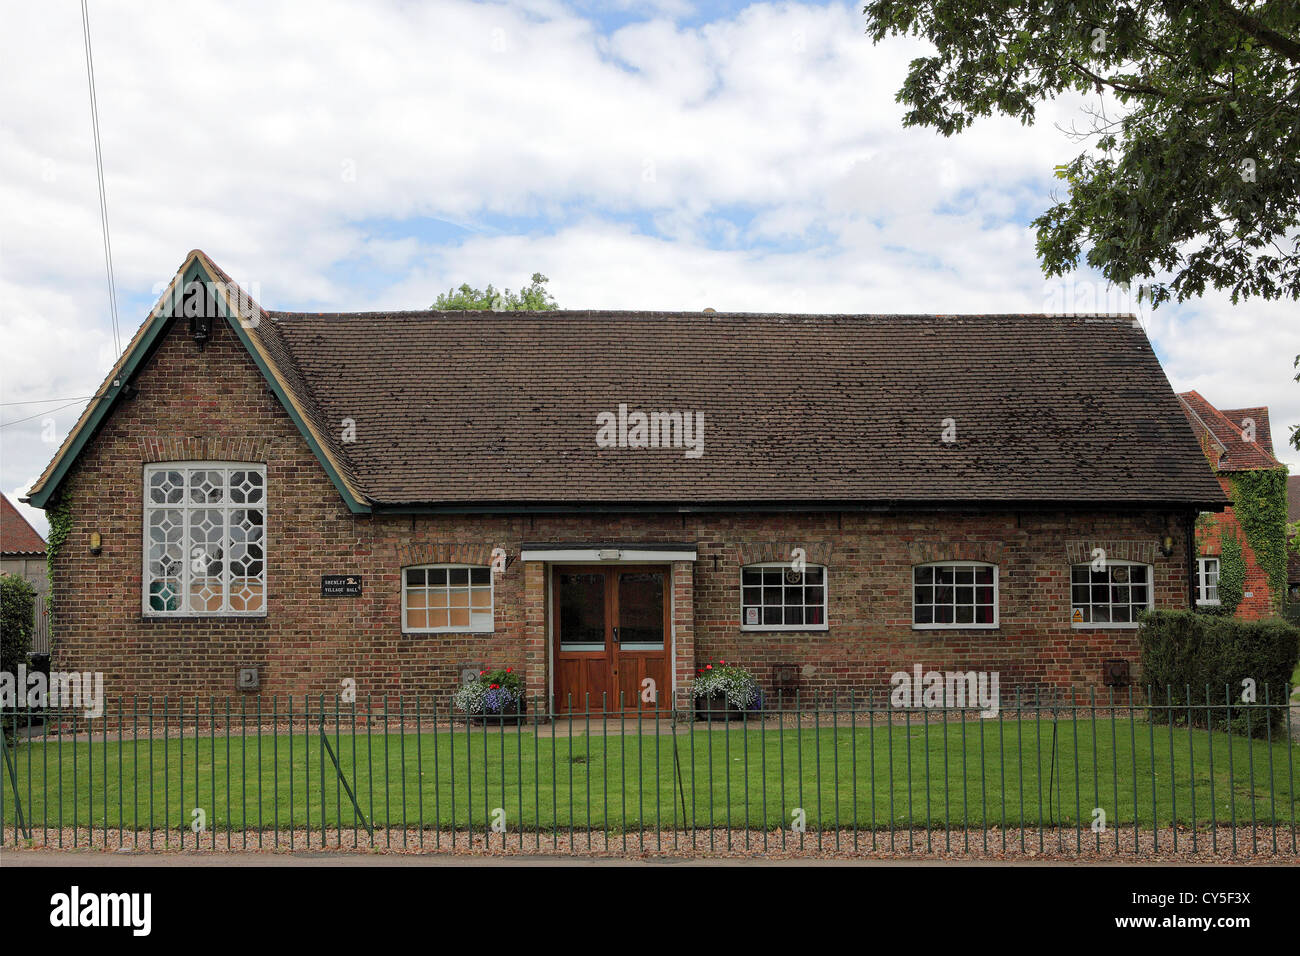 The Village Hall in Shenley,Hertfordshire. - Stock Image